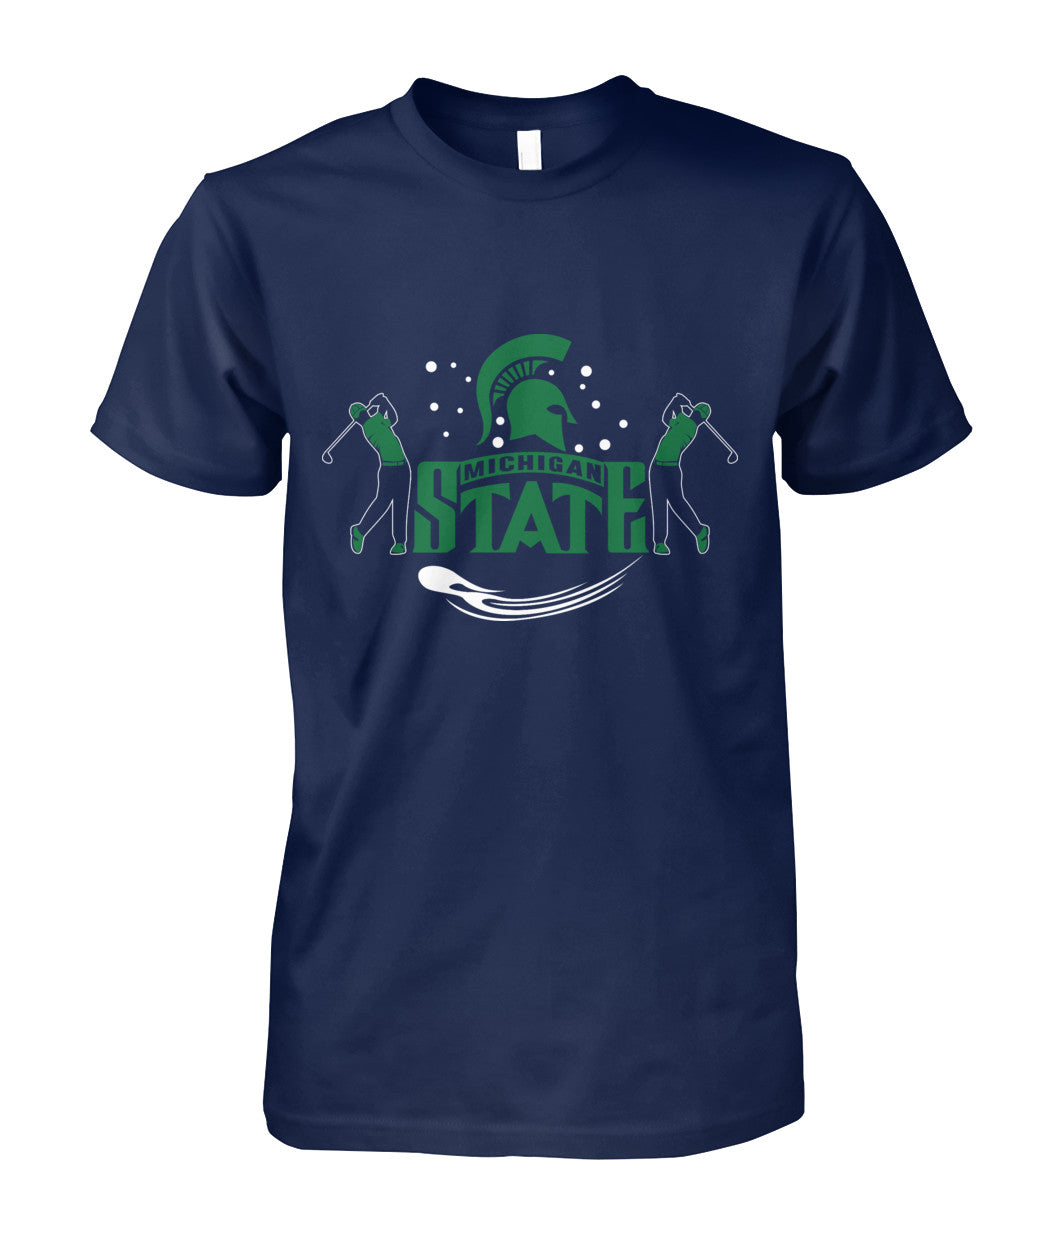 Michigan state funny golf shirt Unisex Cotton Tee-Short Sleeves - AllGolfUSA.COM